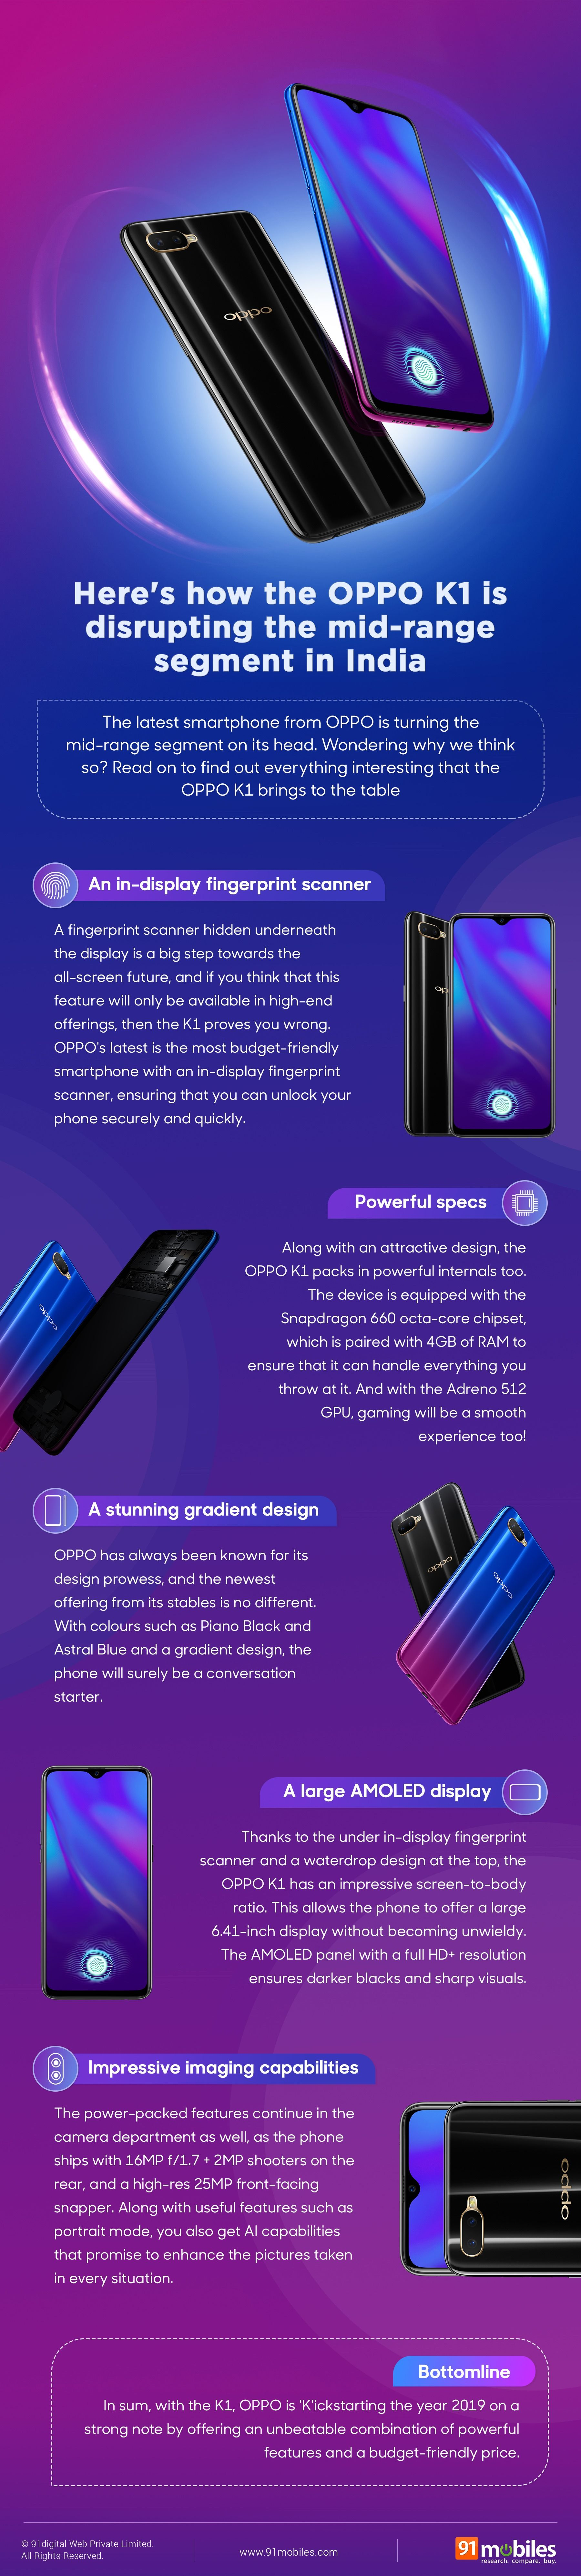 Heres-how-the-OPPO-K1-is-disrupting-the-mid-range-segment-in-India-Infographic-91mobiles_thumb.jpg